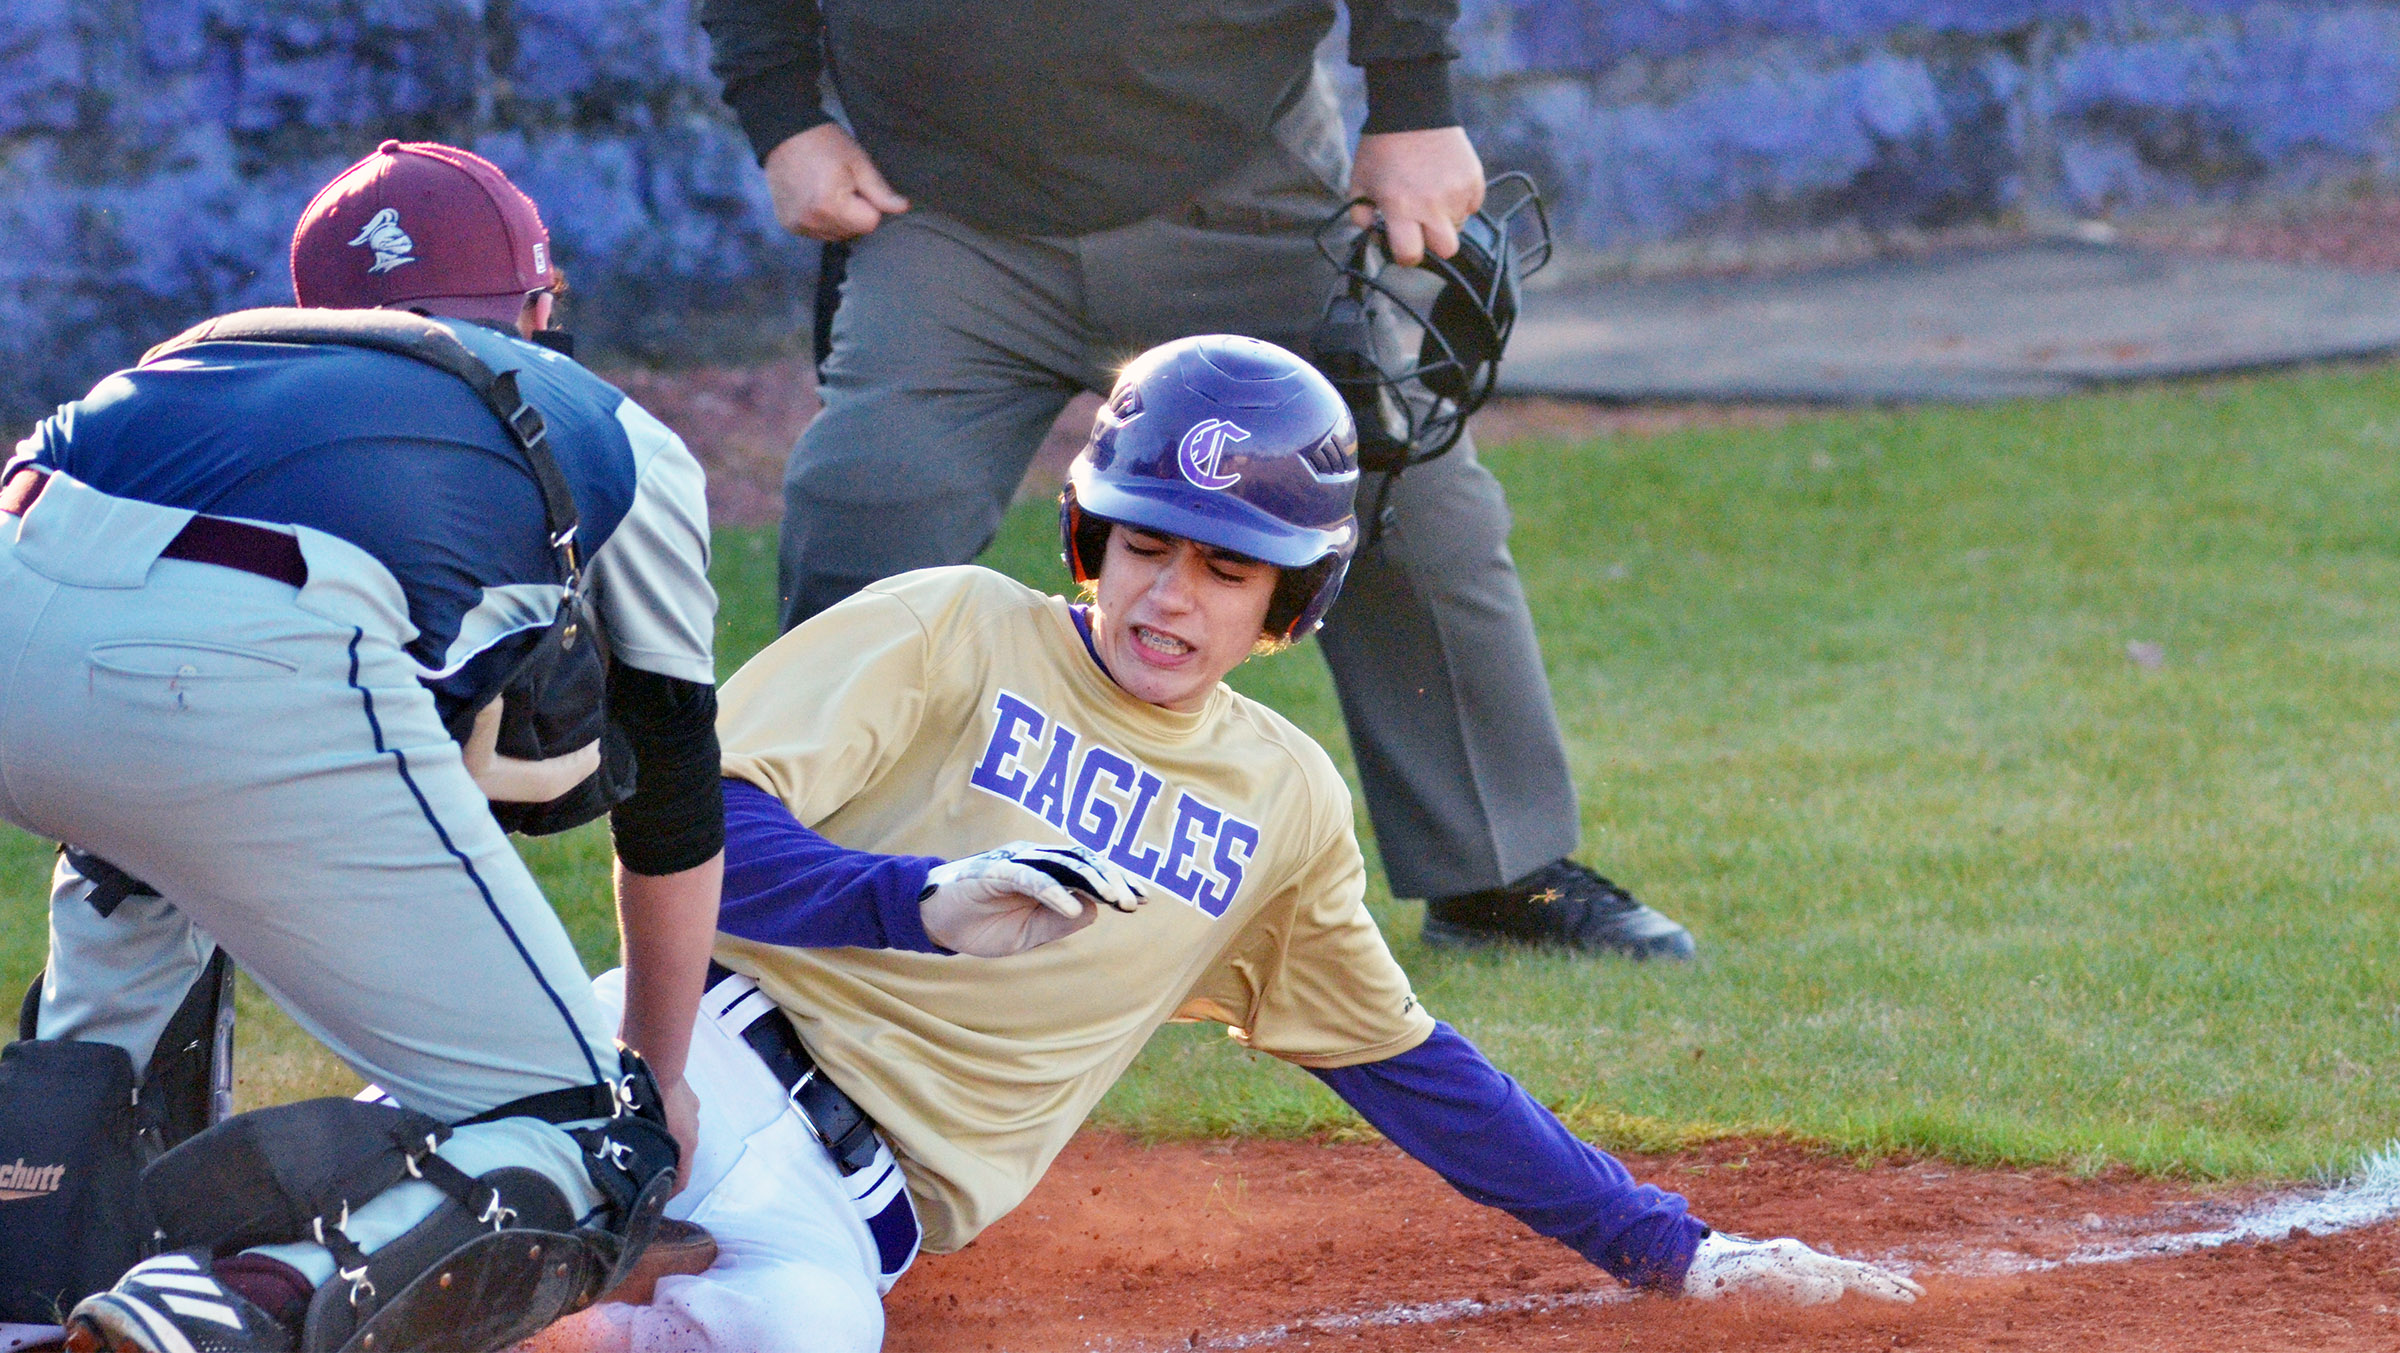 CMS eighth-grader Kameron Smith slides into home plate.